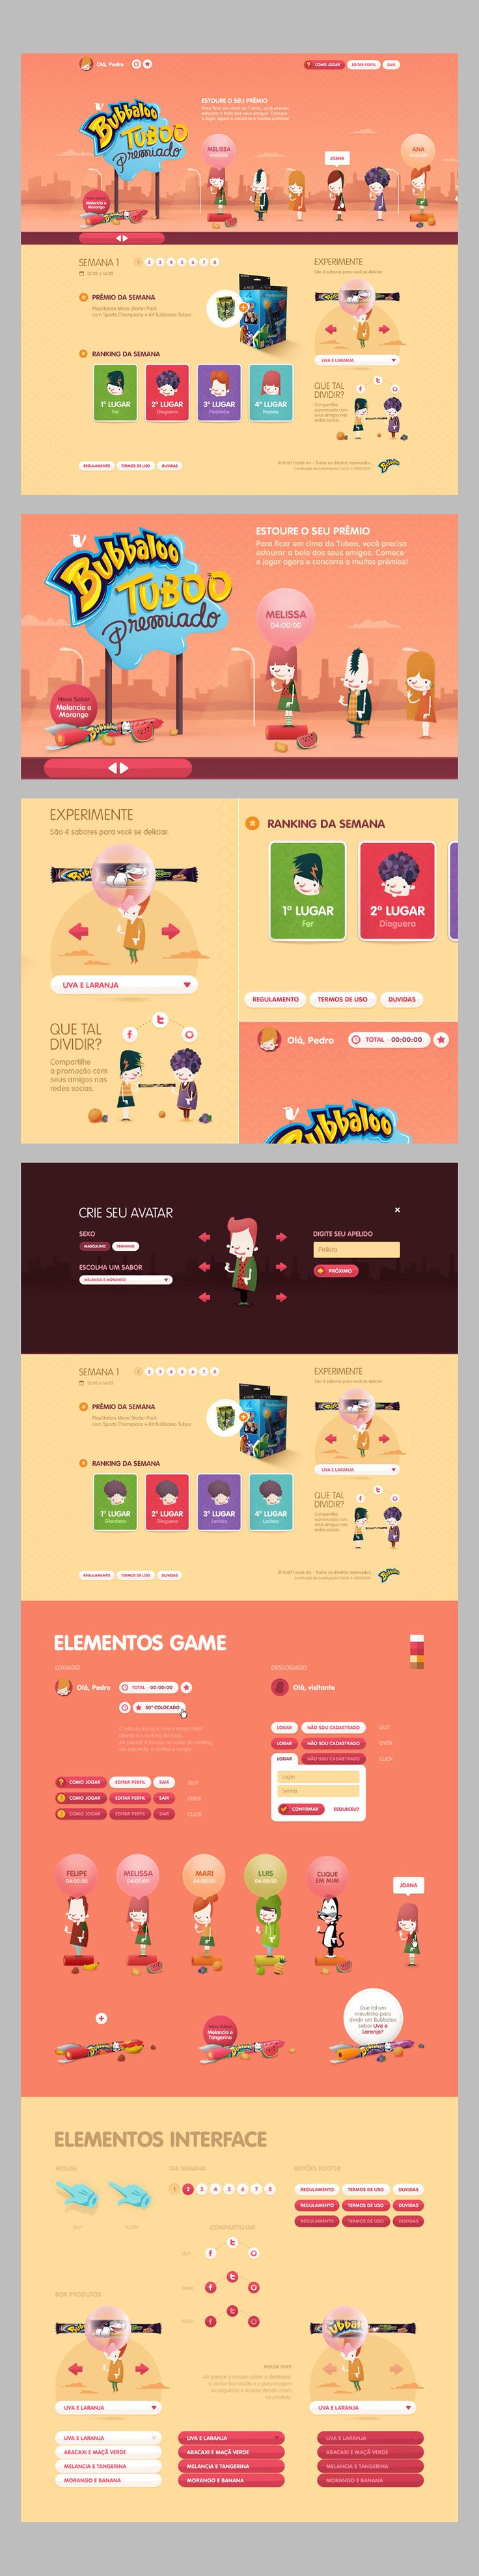 BUBBALOO web site - Agency: CUBOCC * My Role: Art Direction and Design * www.bubbaloo.com.br #webdesign